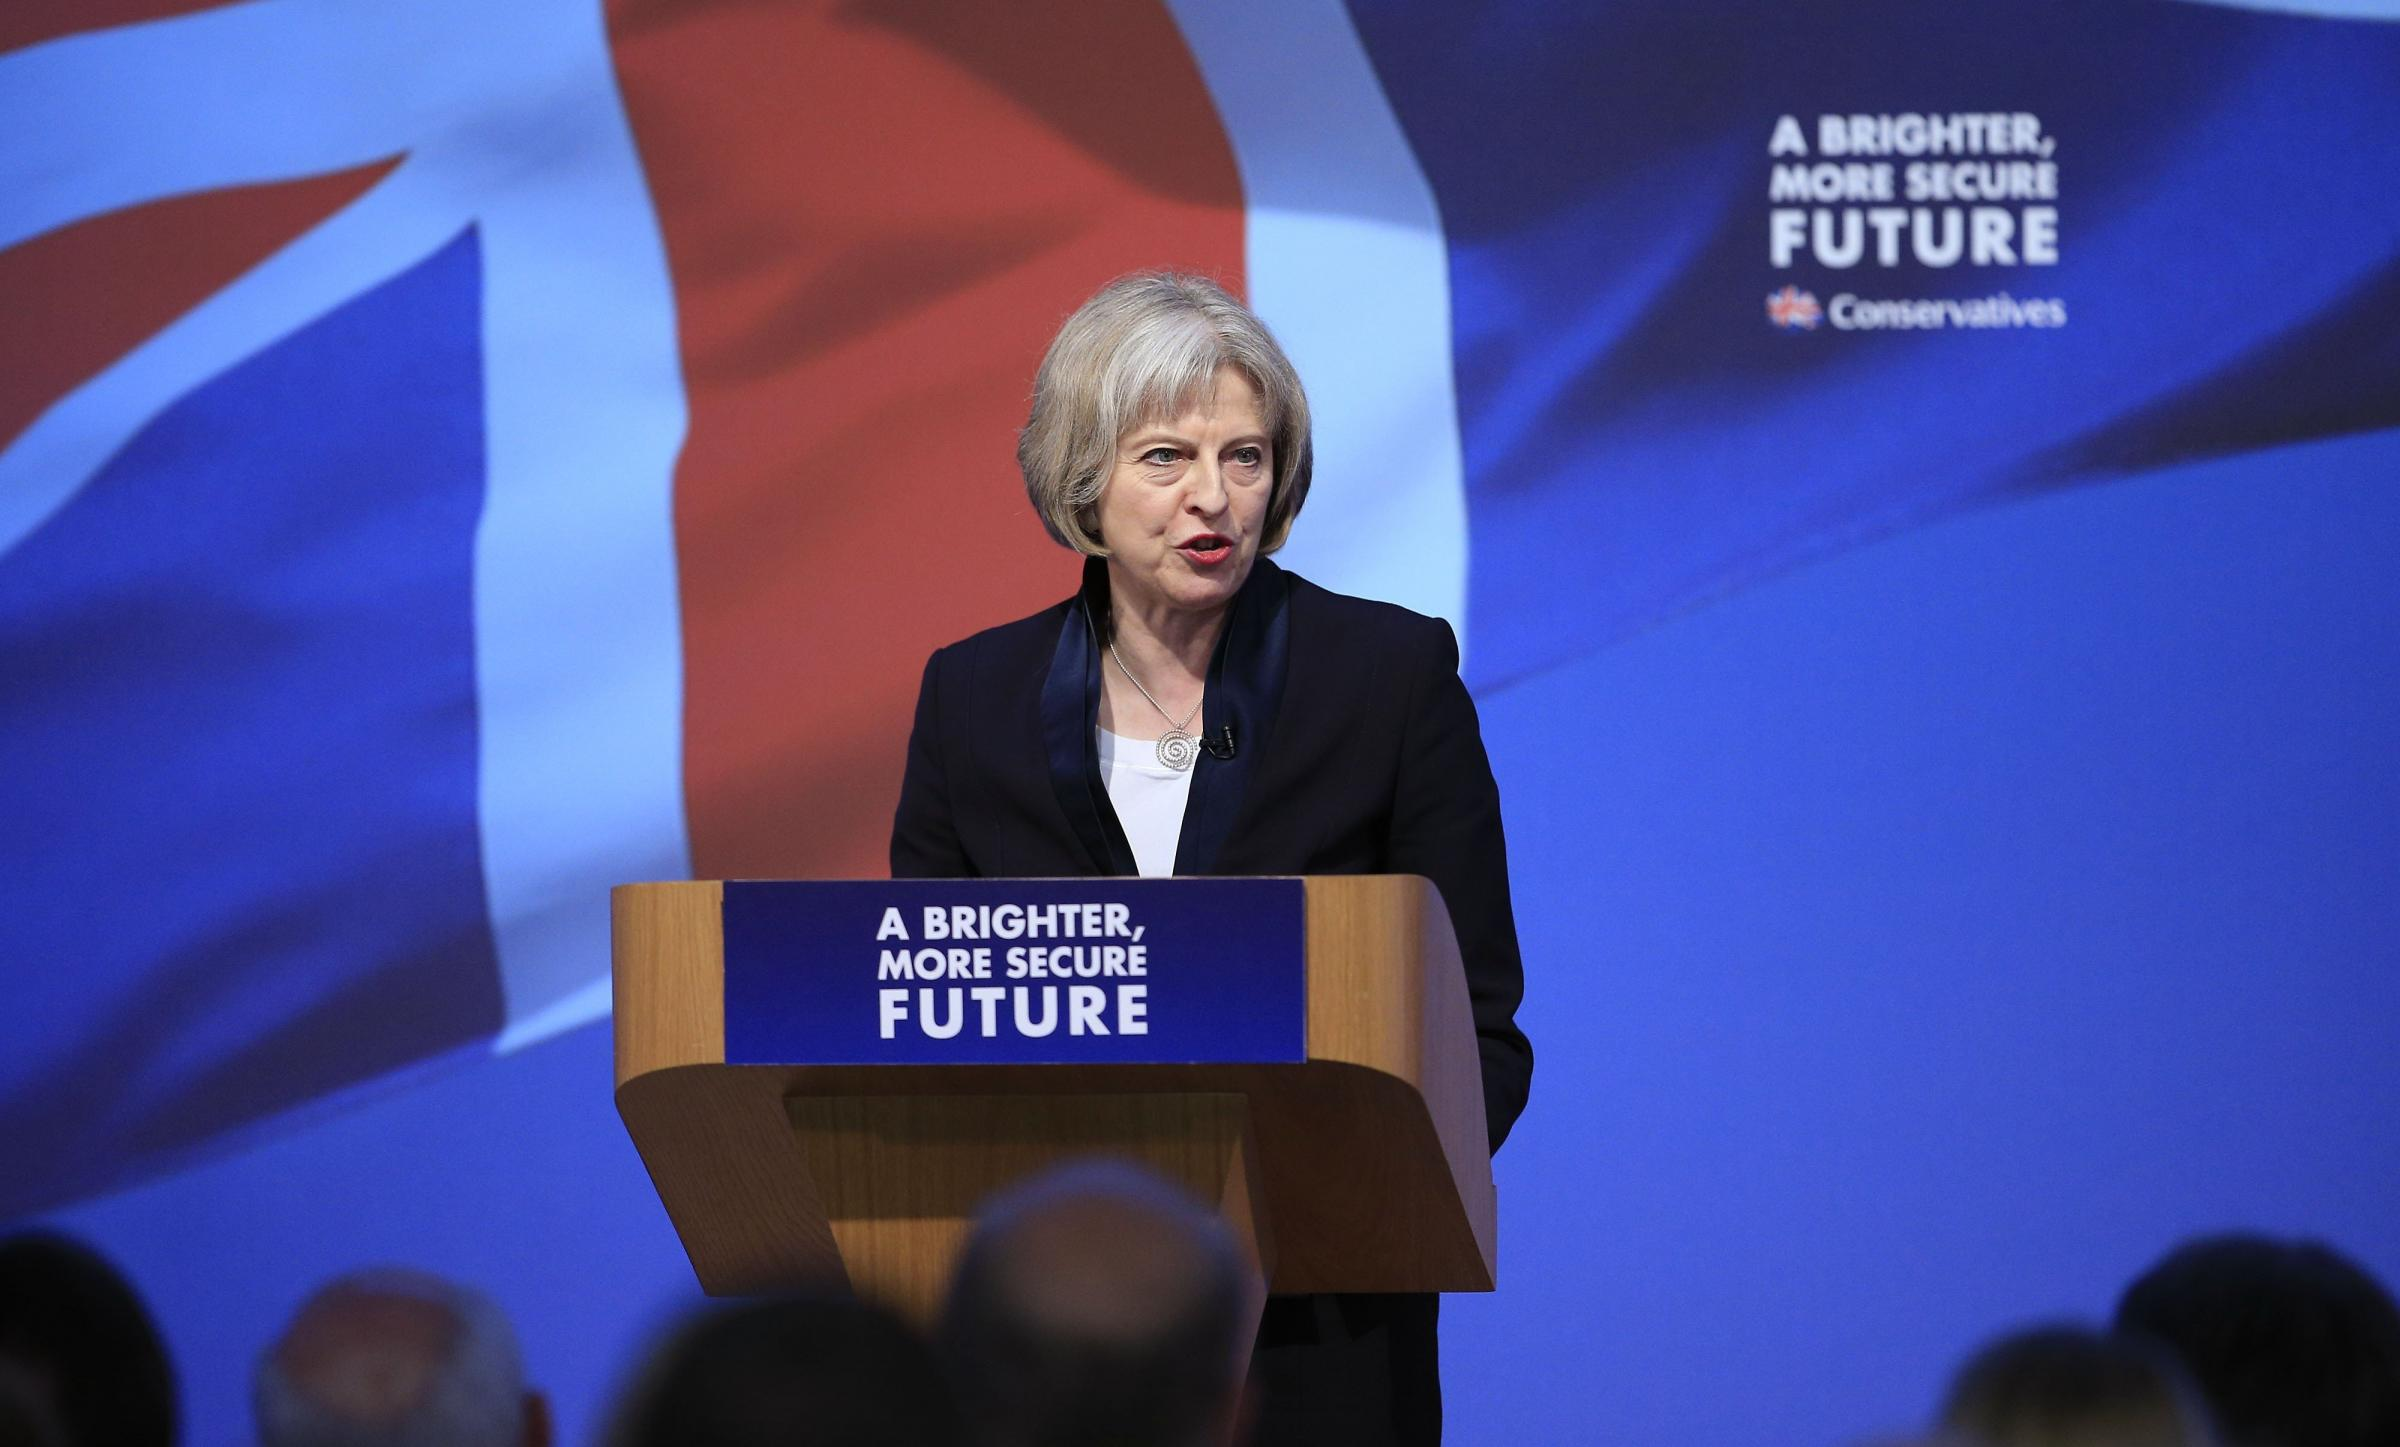 Home Secretary Theresa May speaking at University Technical College in Swindon at the launch of the Conservative Party manifesto. PRESS ASSOCIATION Photo. Picture date: Tuesday April 14, 2015. See PA story ELECTION Main. Photo credit should read: Jonathan